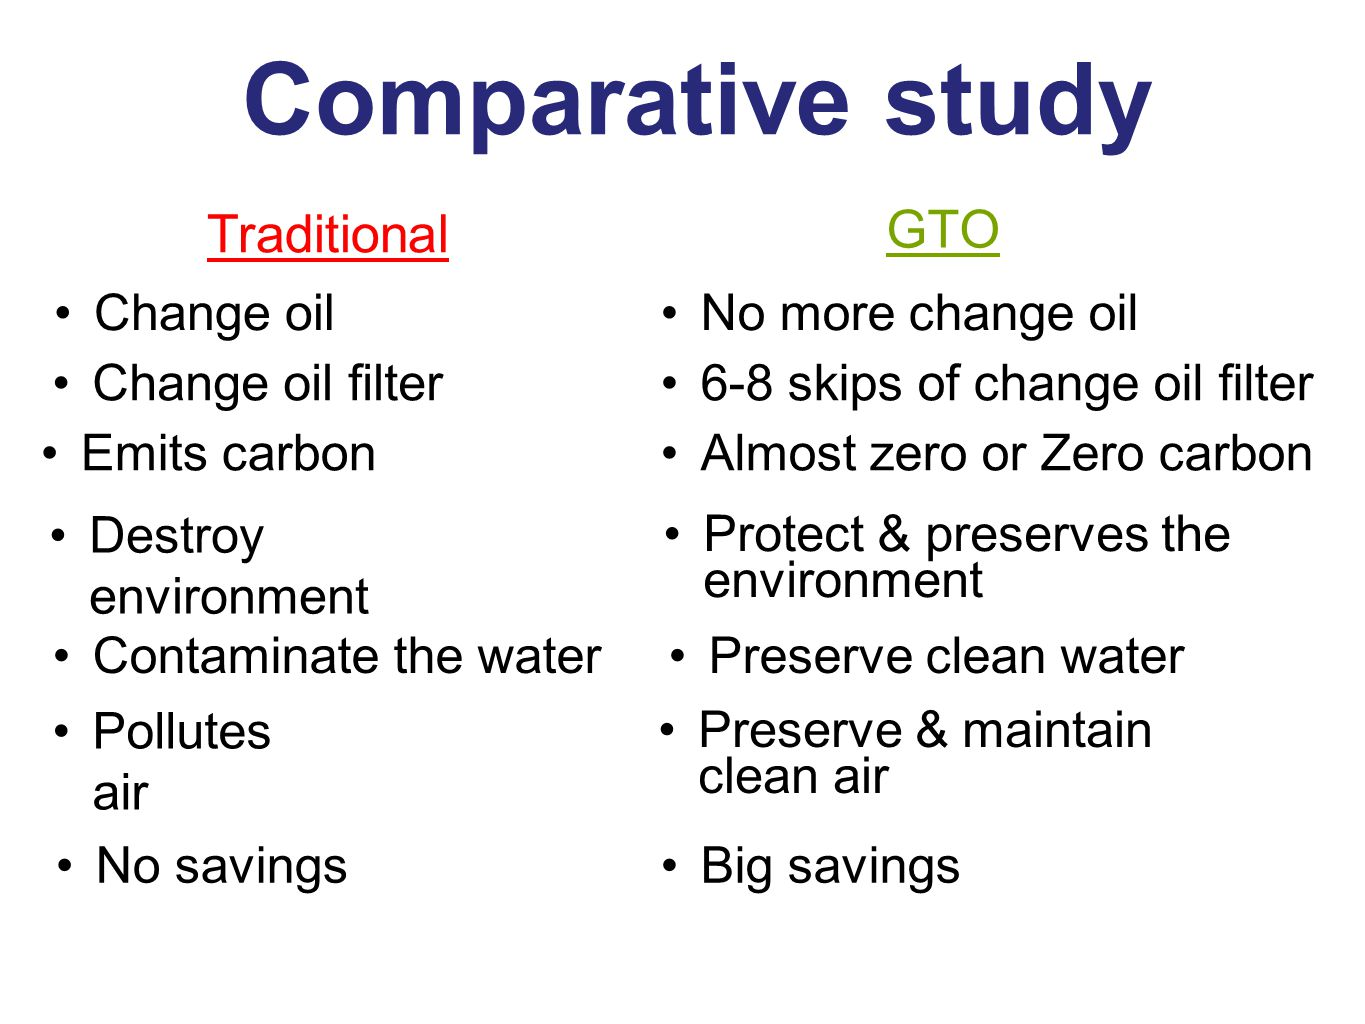 GTO Change oilNo more change oil Change oil filter6-8 skips of change oil filter Emits carbonAlmost zero or Zero carbon Destroy environment Protect & preserves the environment Contaminate the waterPreserve clean water Pollutes air Preserve & maintain clean air No savingsBig savings Comparative study Traditional